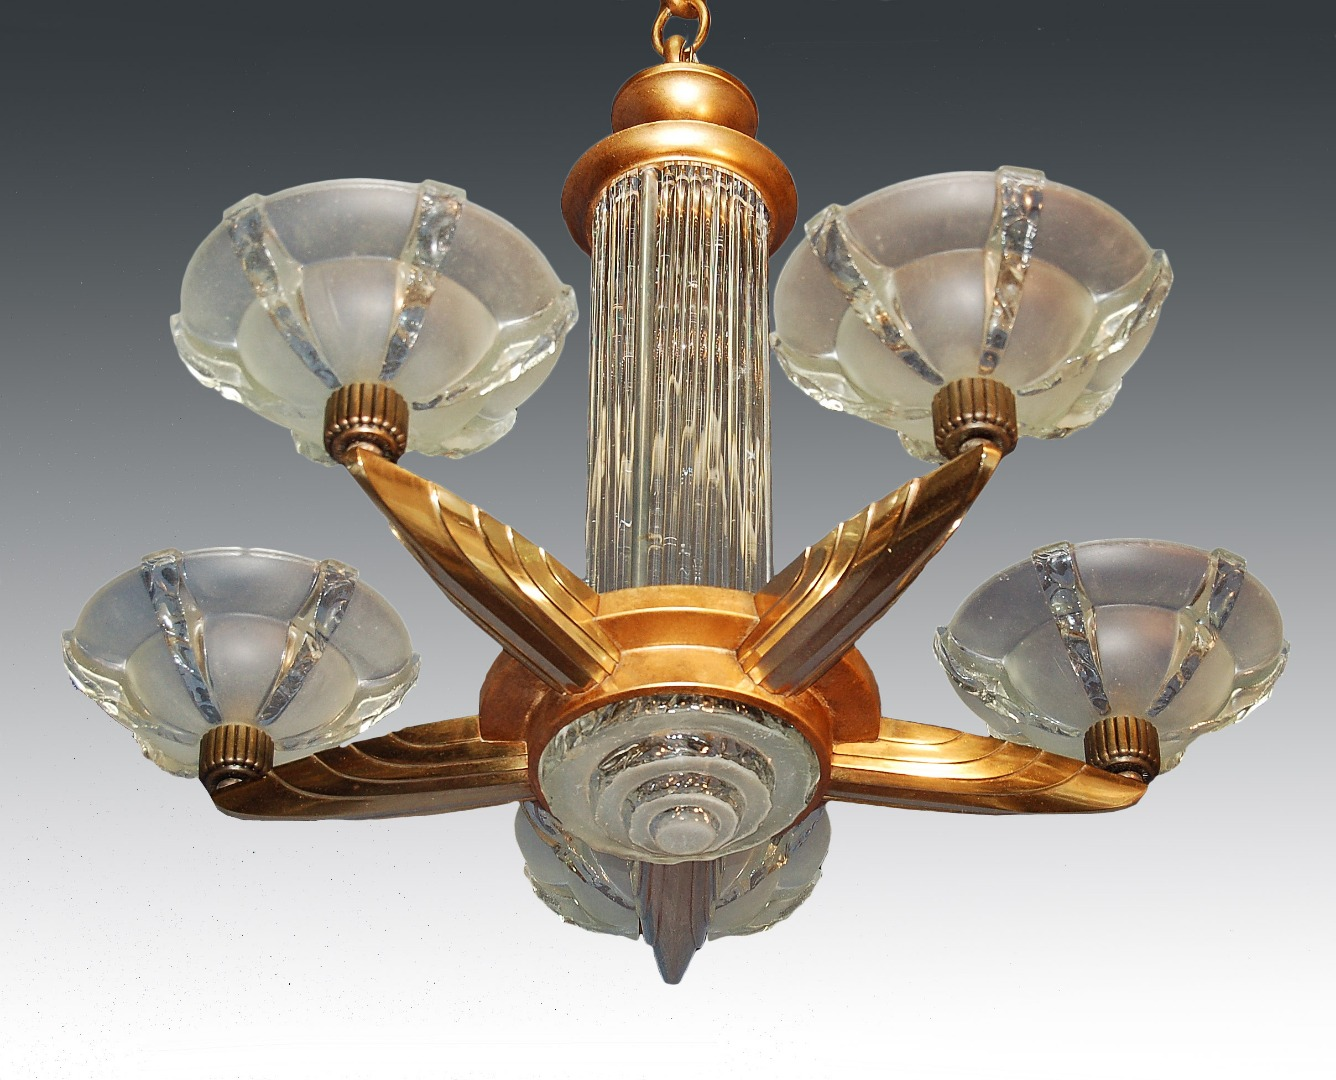 Art deco period light antiques in france for Art deco period